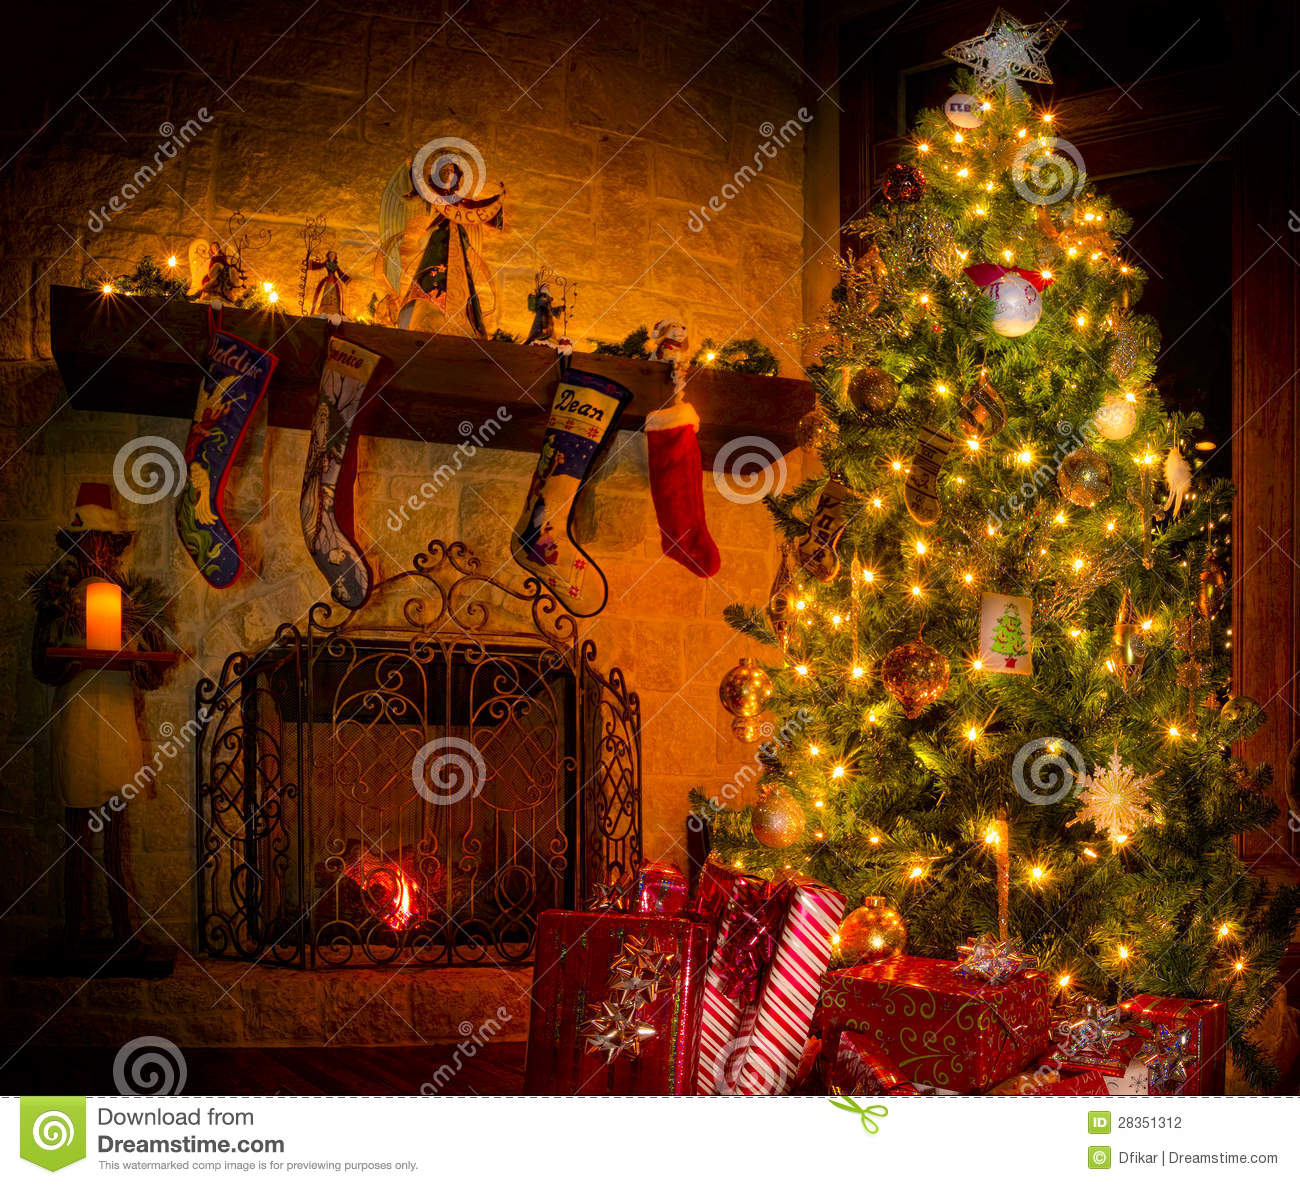 Christmas In The Family Room Stock Photo - Image of warmth, peace ...